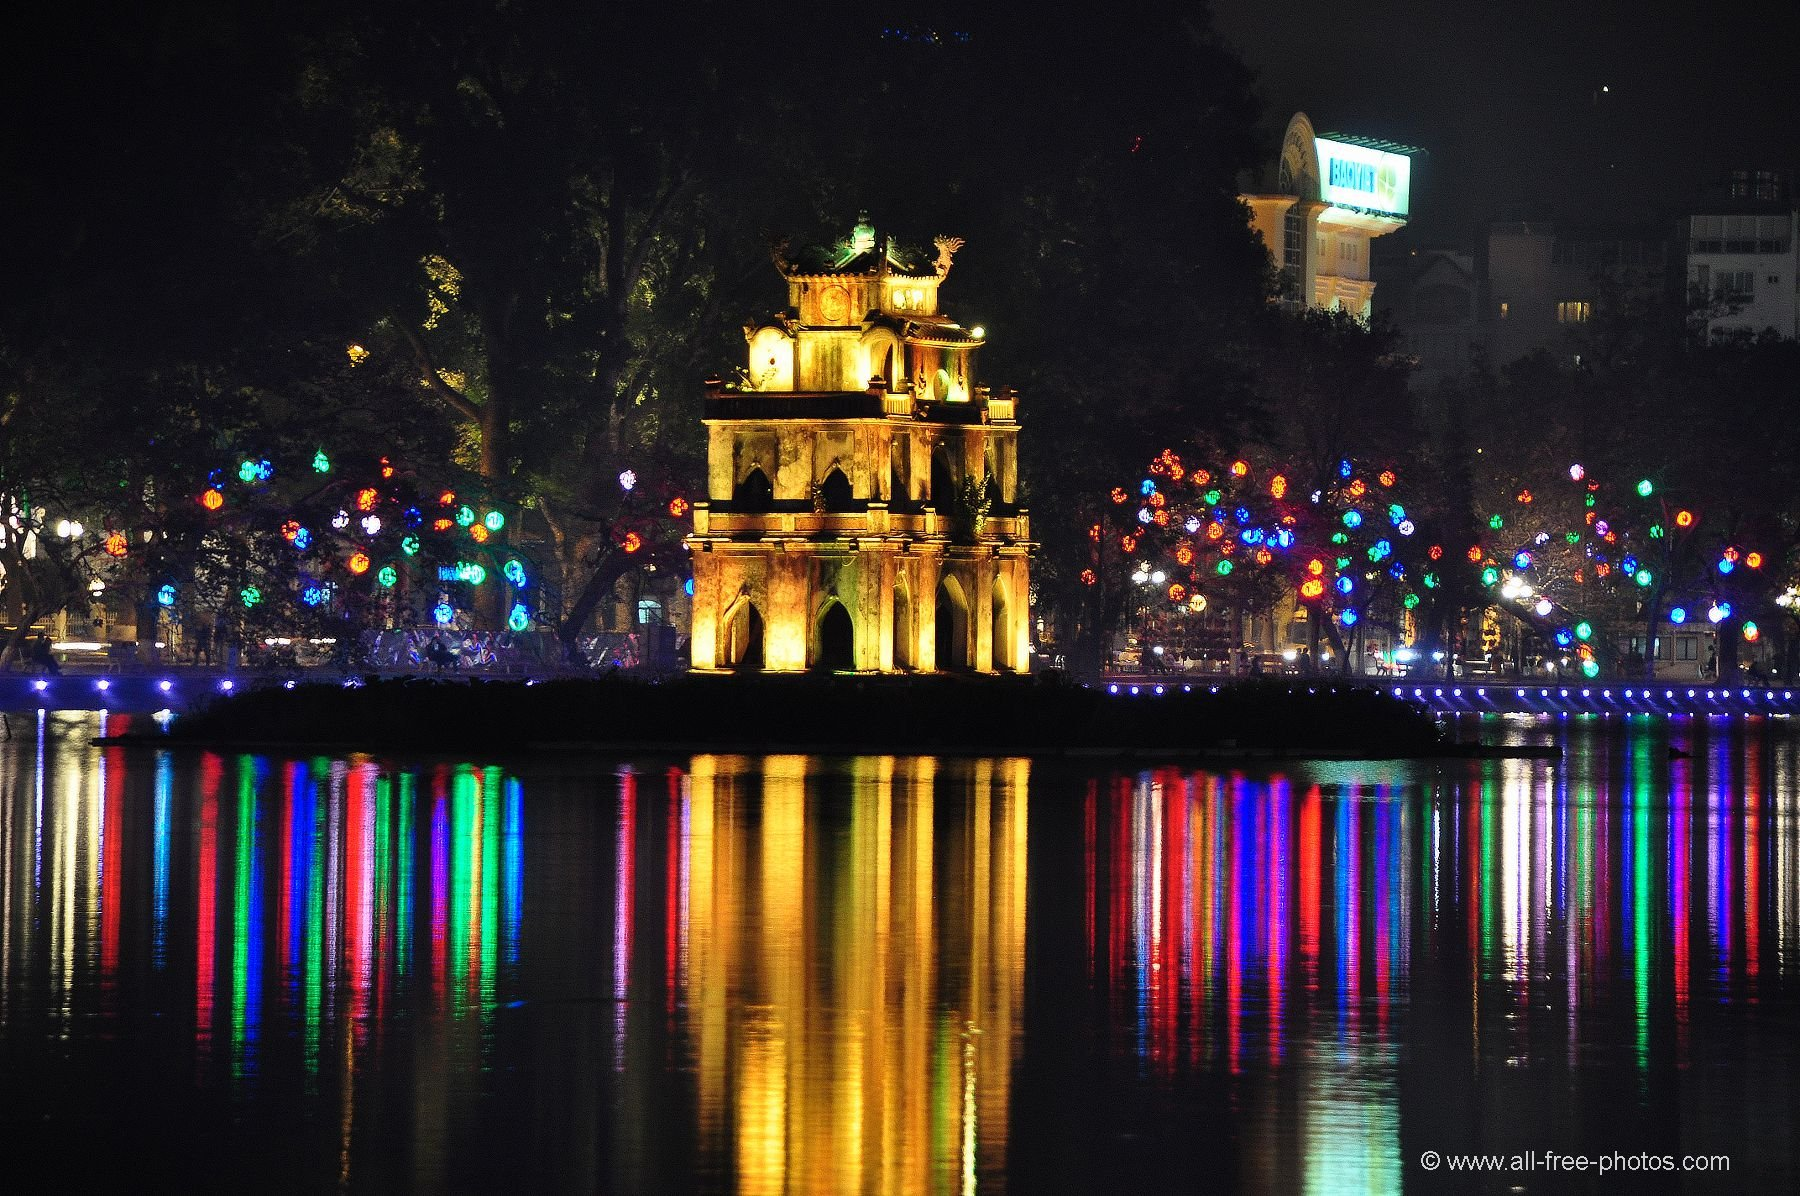 One day at Hoan Kiem Lake